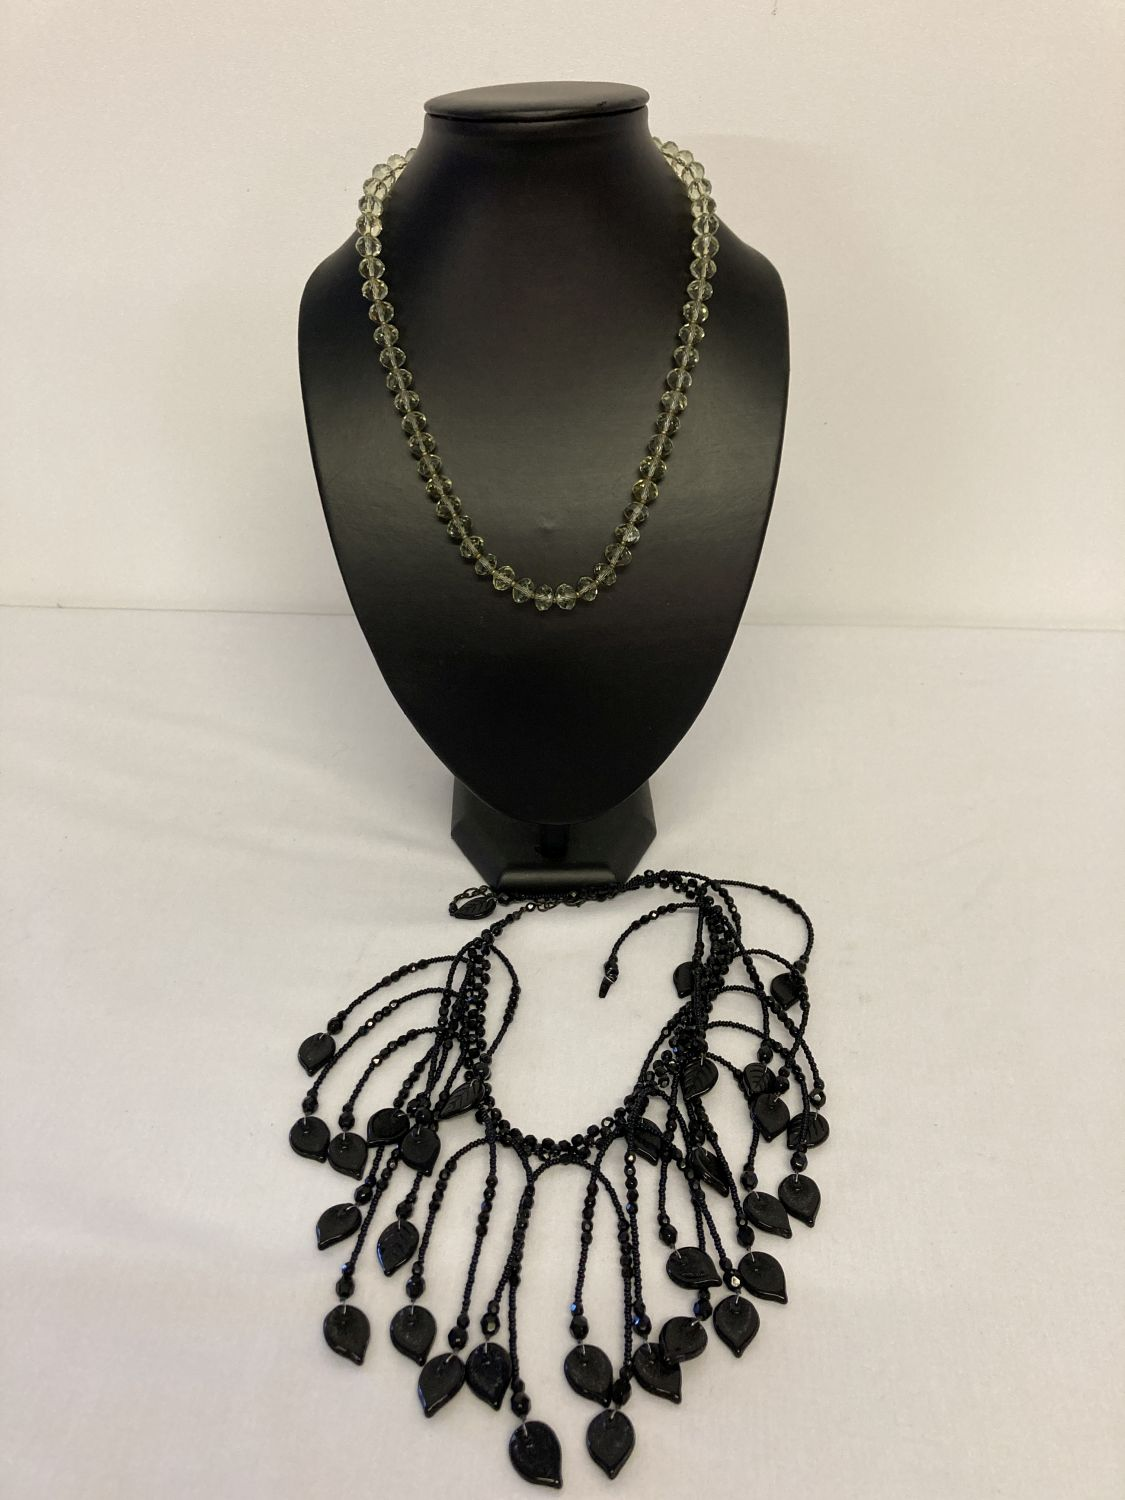 2 glass bead necklaces. A modern design black glass drop style statement necklace with leaf detail.